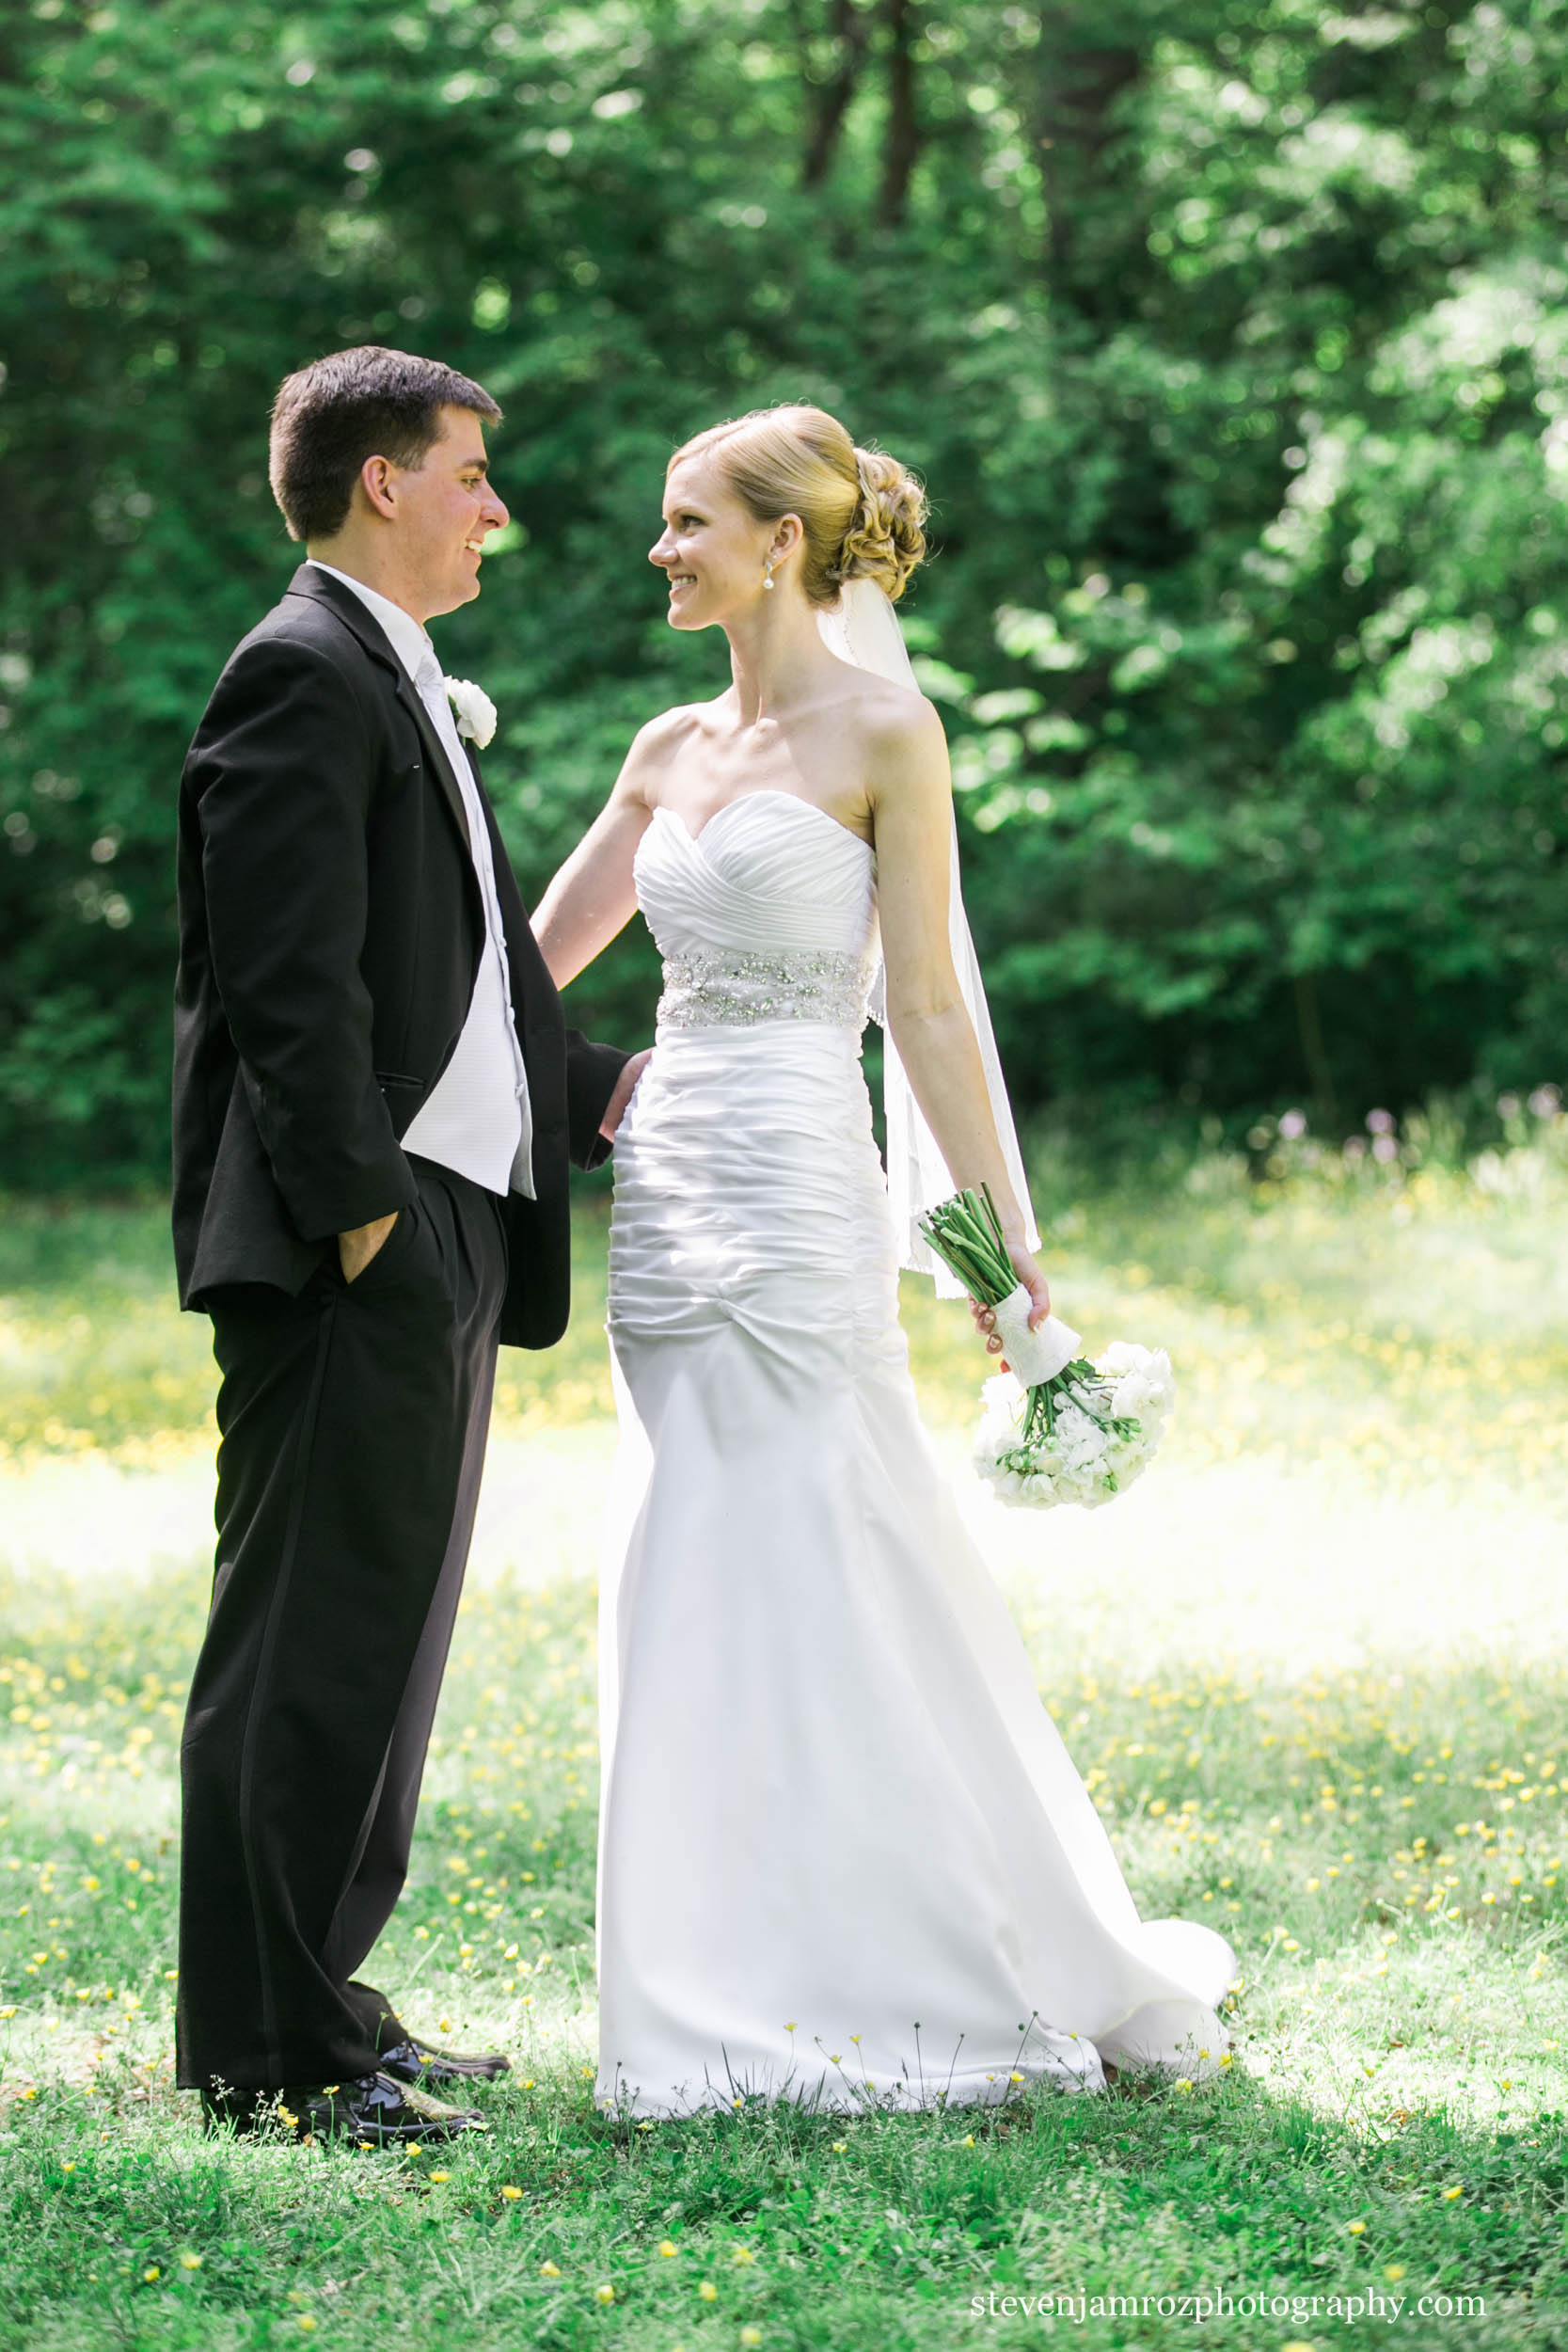 first-look-bride-raleigh-nc-steven-jamroz-photography-0531.jpg